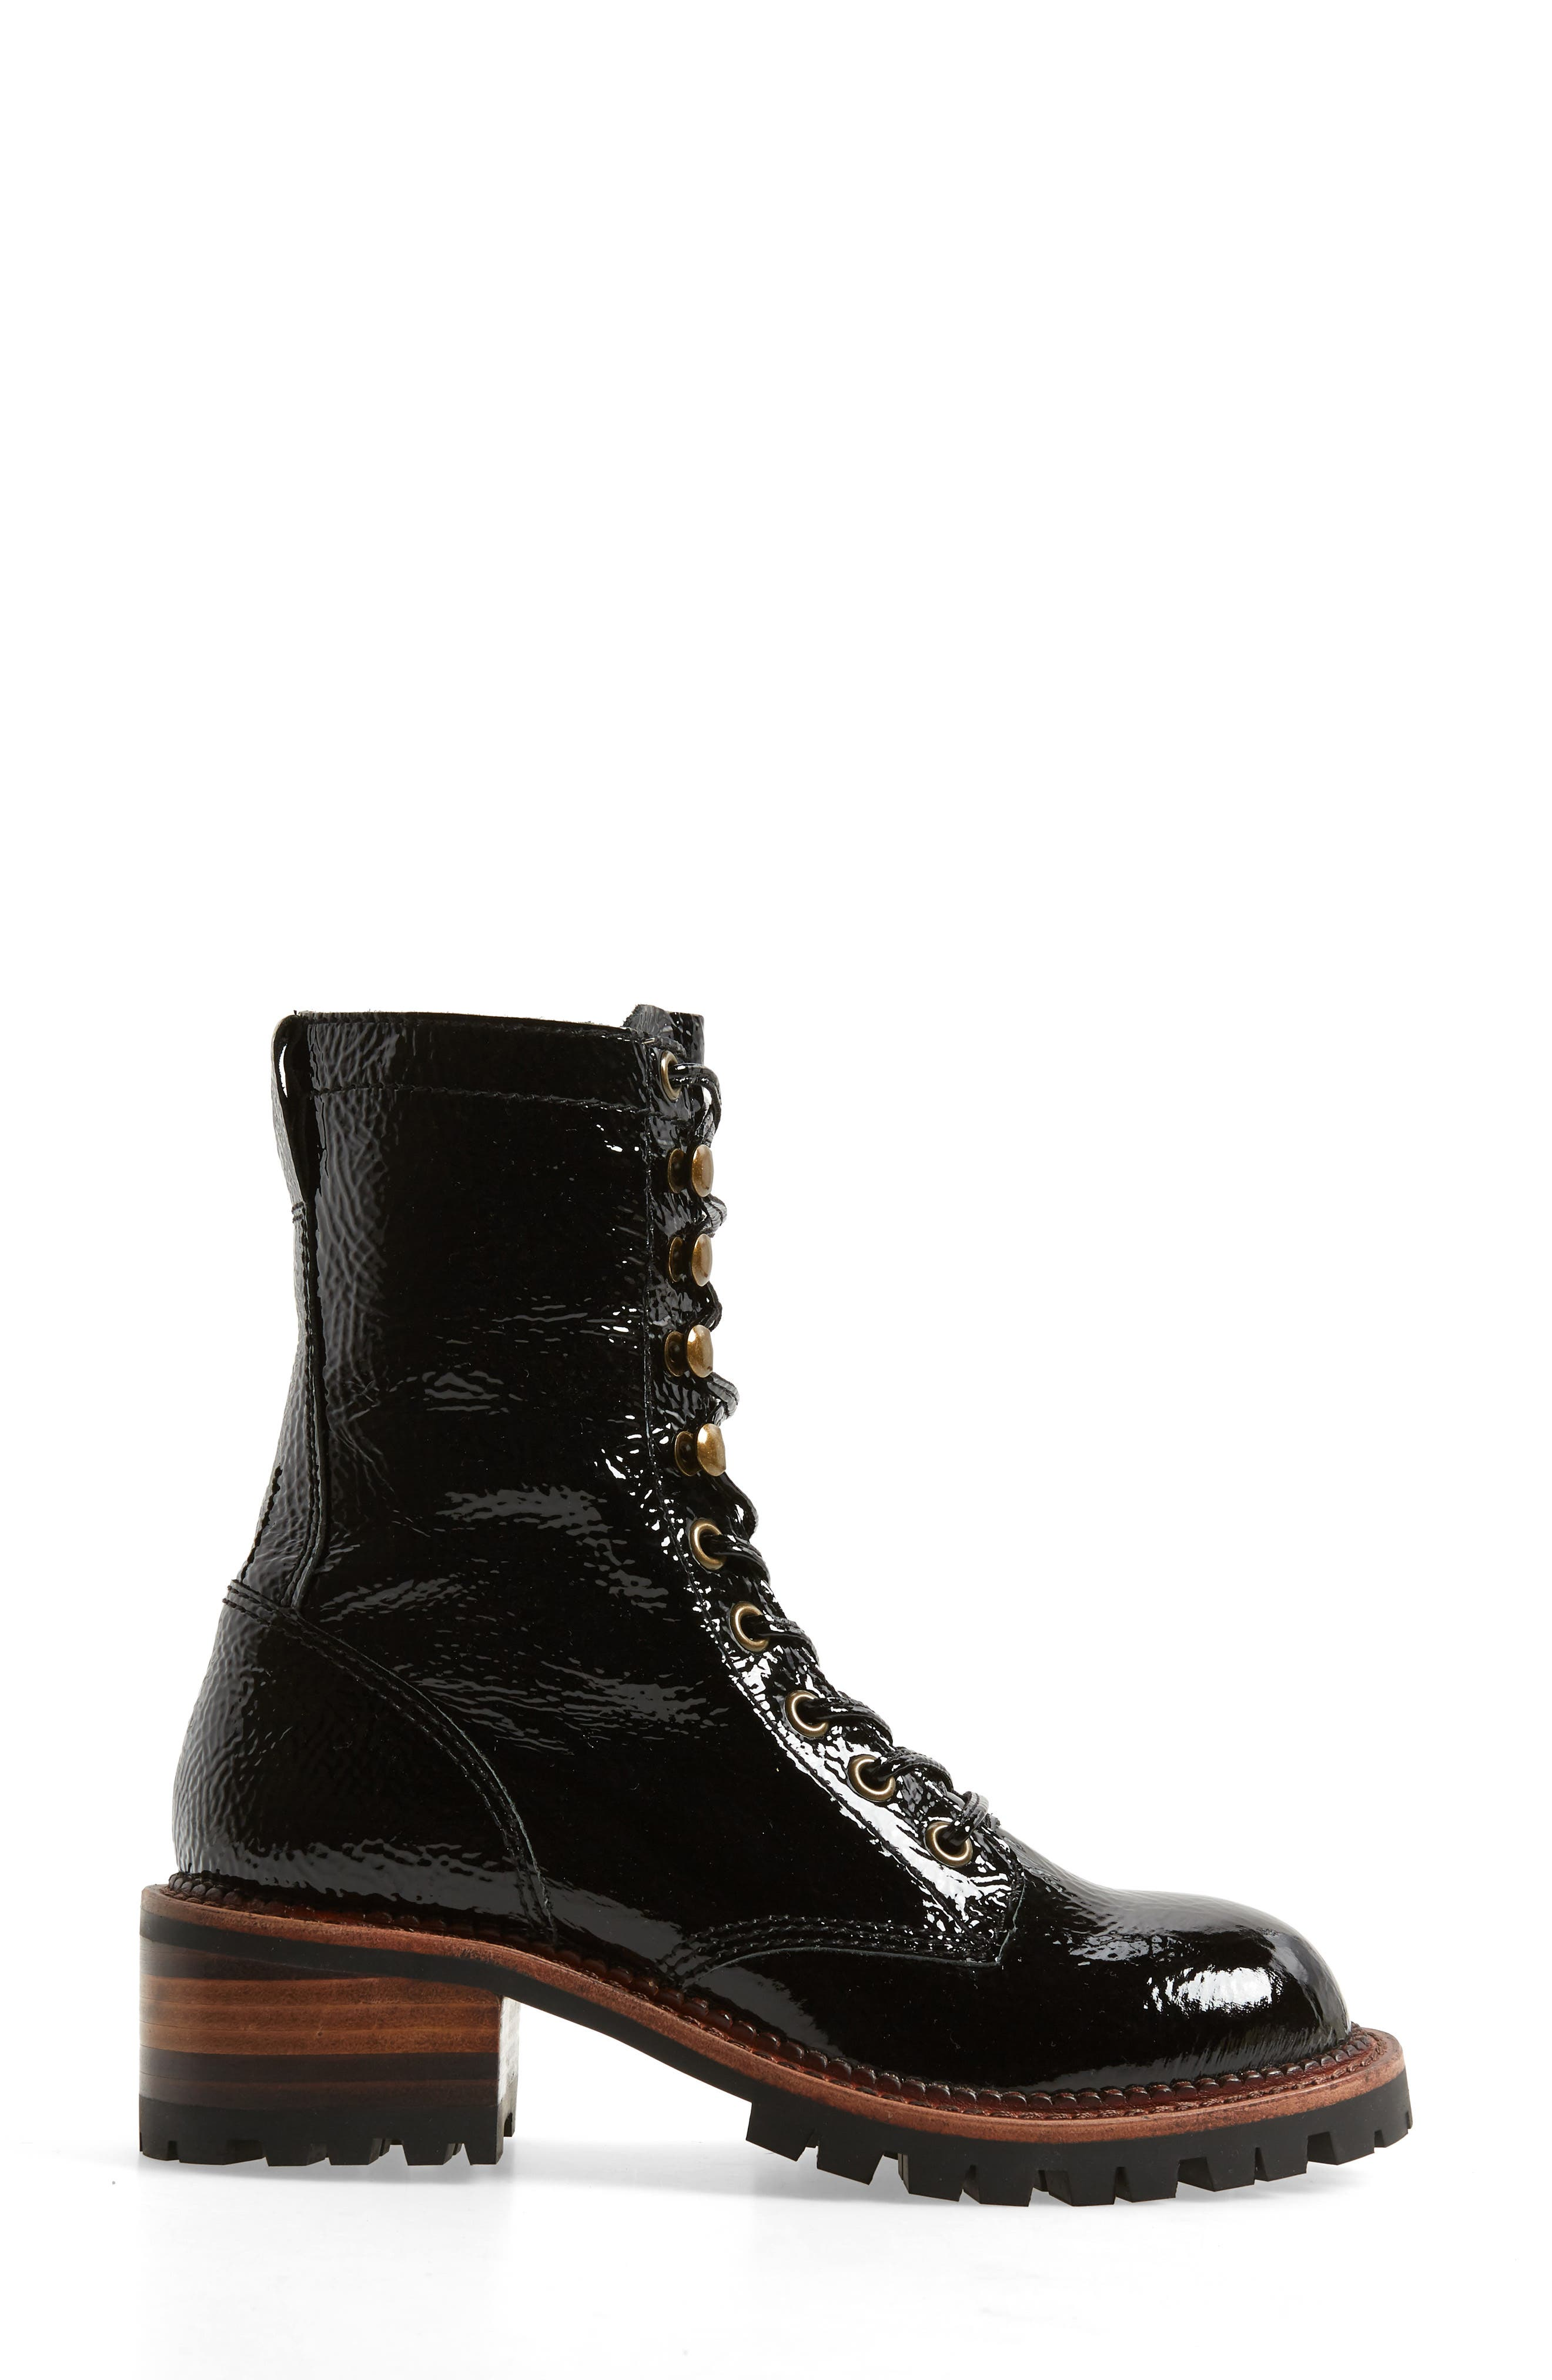 Sycamore Patent Leather Boot,                             Alternate thumbnail 3, color,                             BLACK CRINKLE PATENT LEATHER